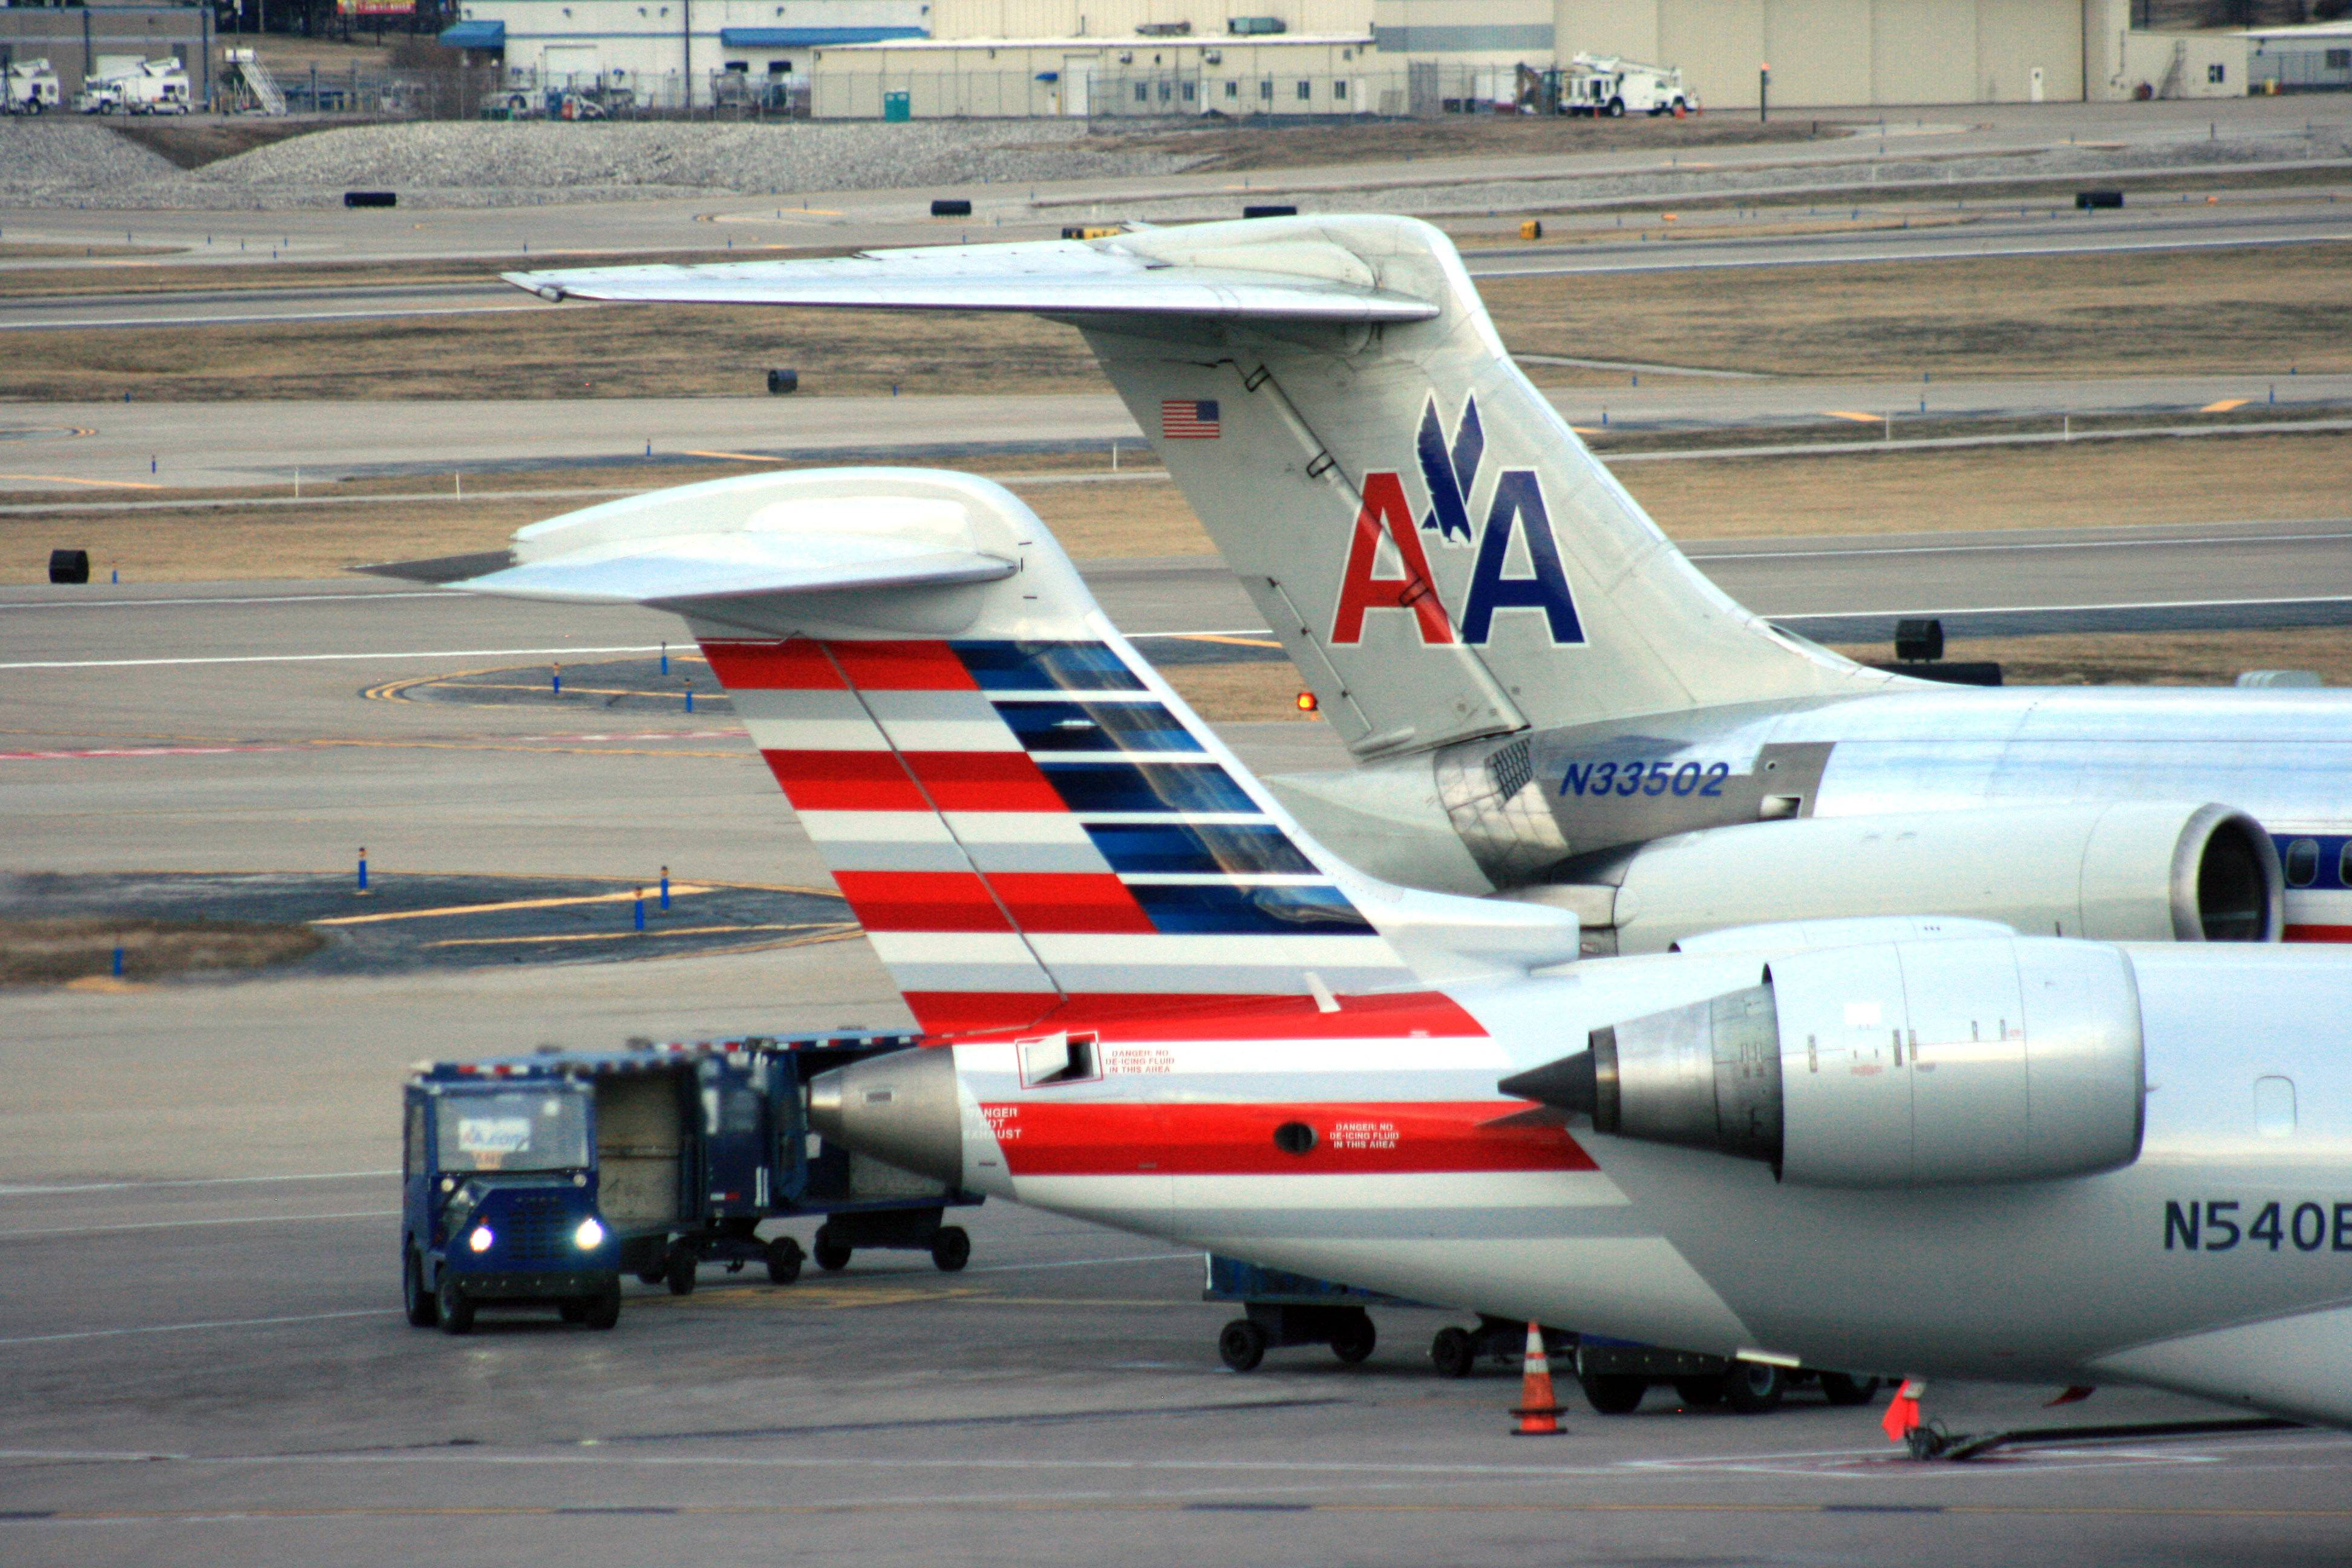 American Airlines Group Inc. is doubling the amount of frequent-flier award miles needed to gain a free one-way ticket for flights on the busiest travel days. The increase, to 50,000 miles for trips on days like the Sunday after Thanksgiving, is among changes American announced today to better match its policies with those of merger partner US Airways.